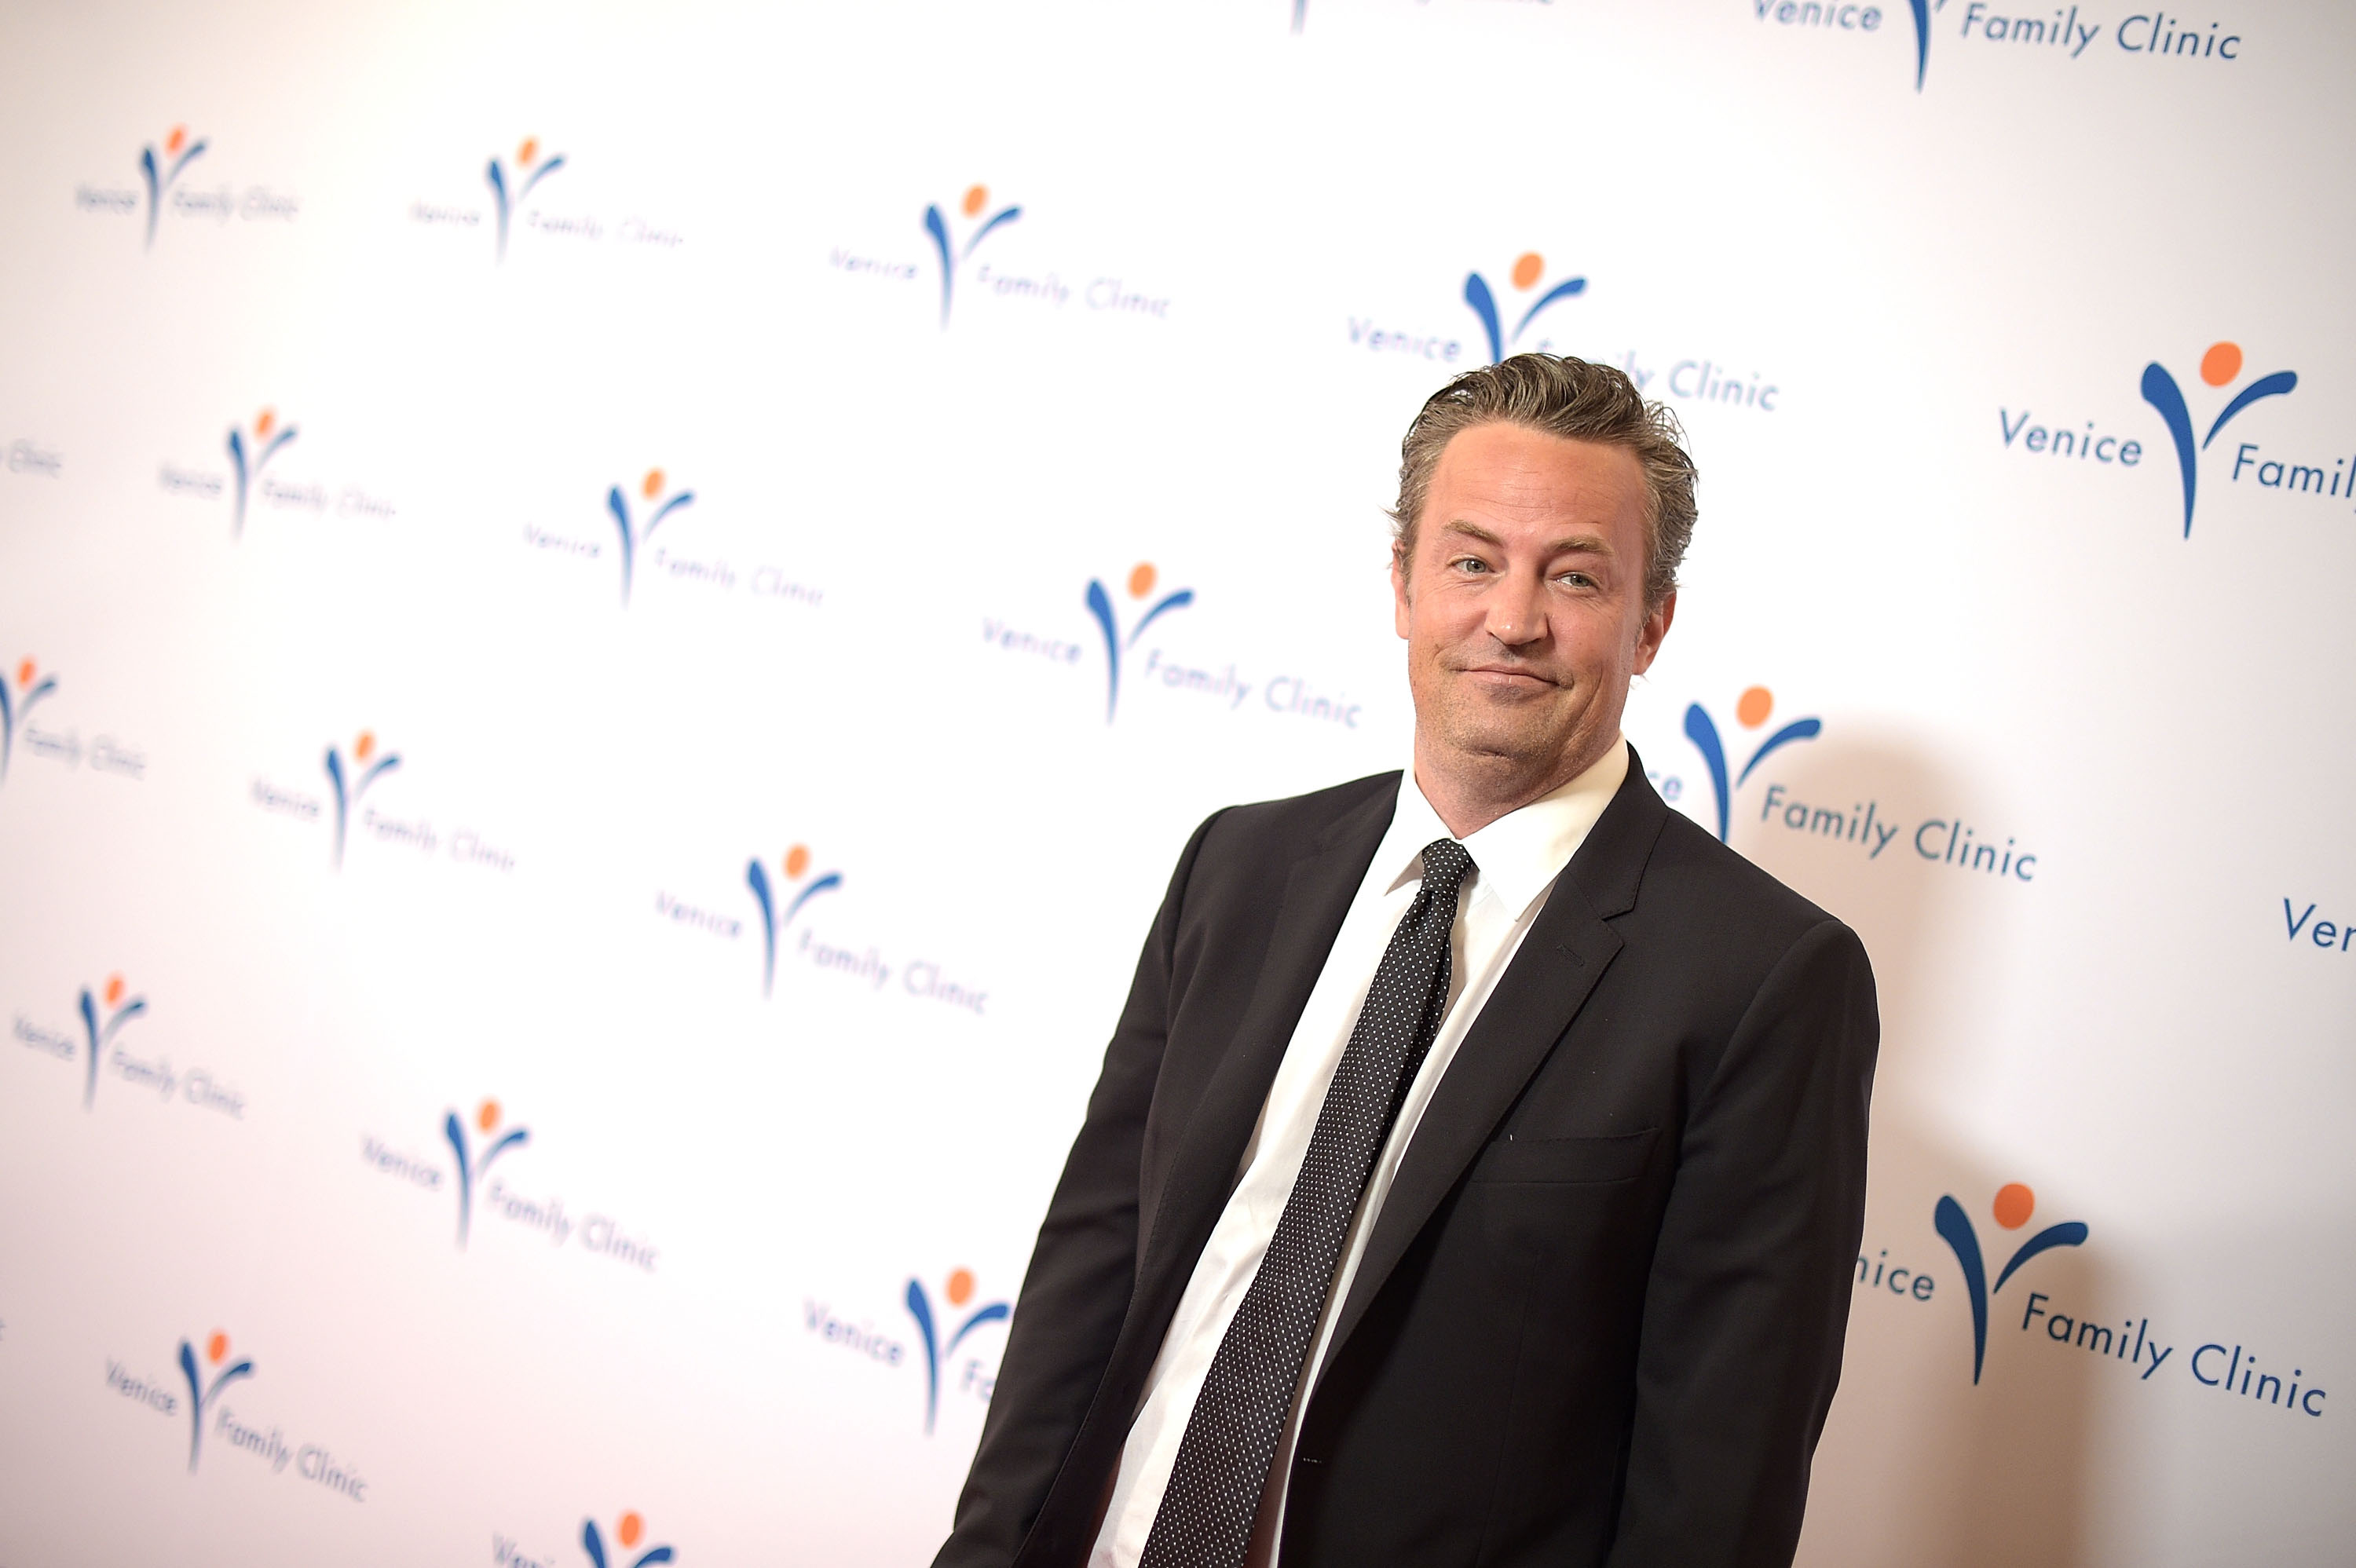 Matthew Perry attends Venice Family Clinic's 33rd Annual Silver Circle Gala at the Beverly Wilshire Four Seasons Hotel on March 9, 2015 in Beverly Hills, California.